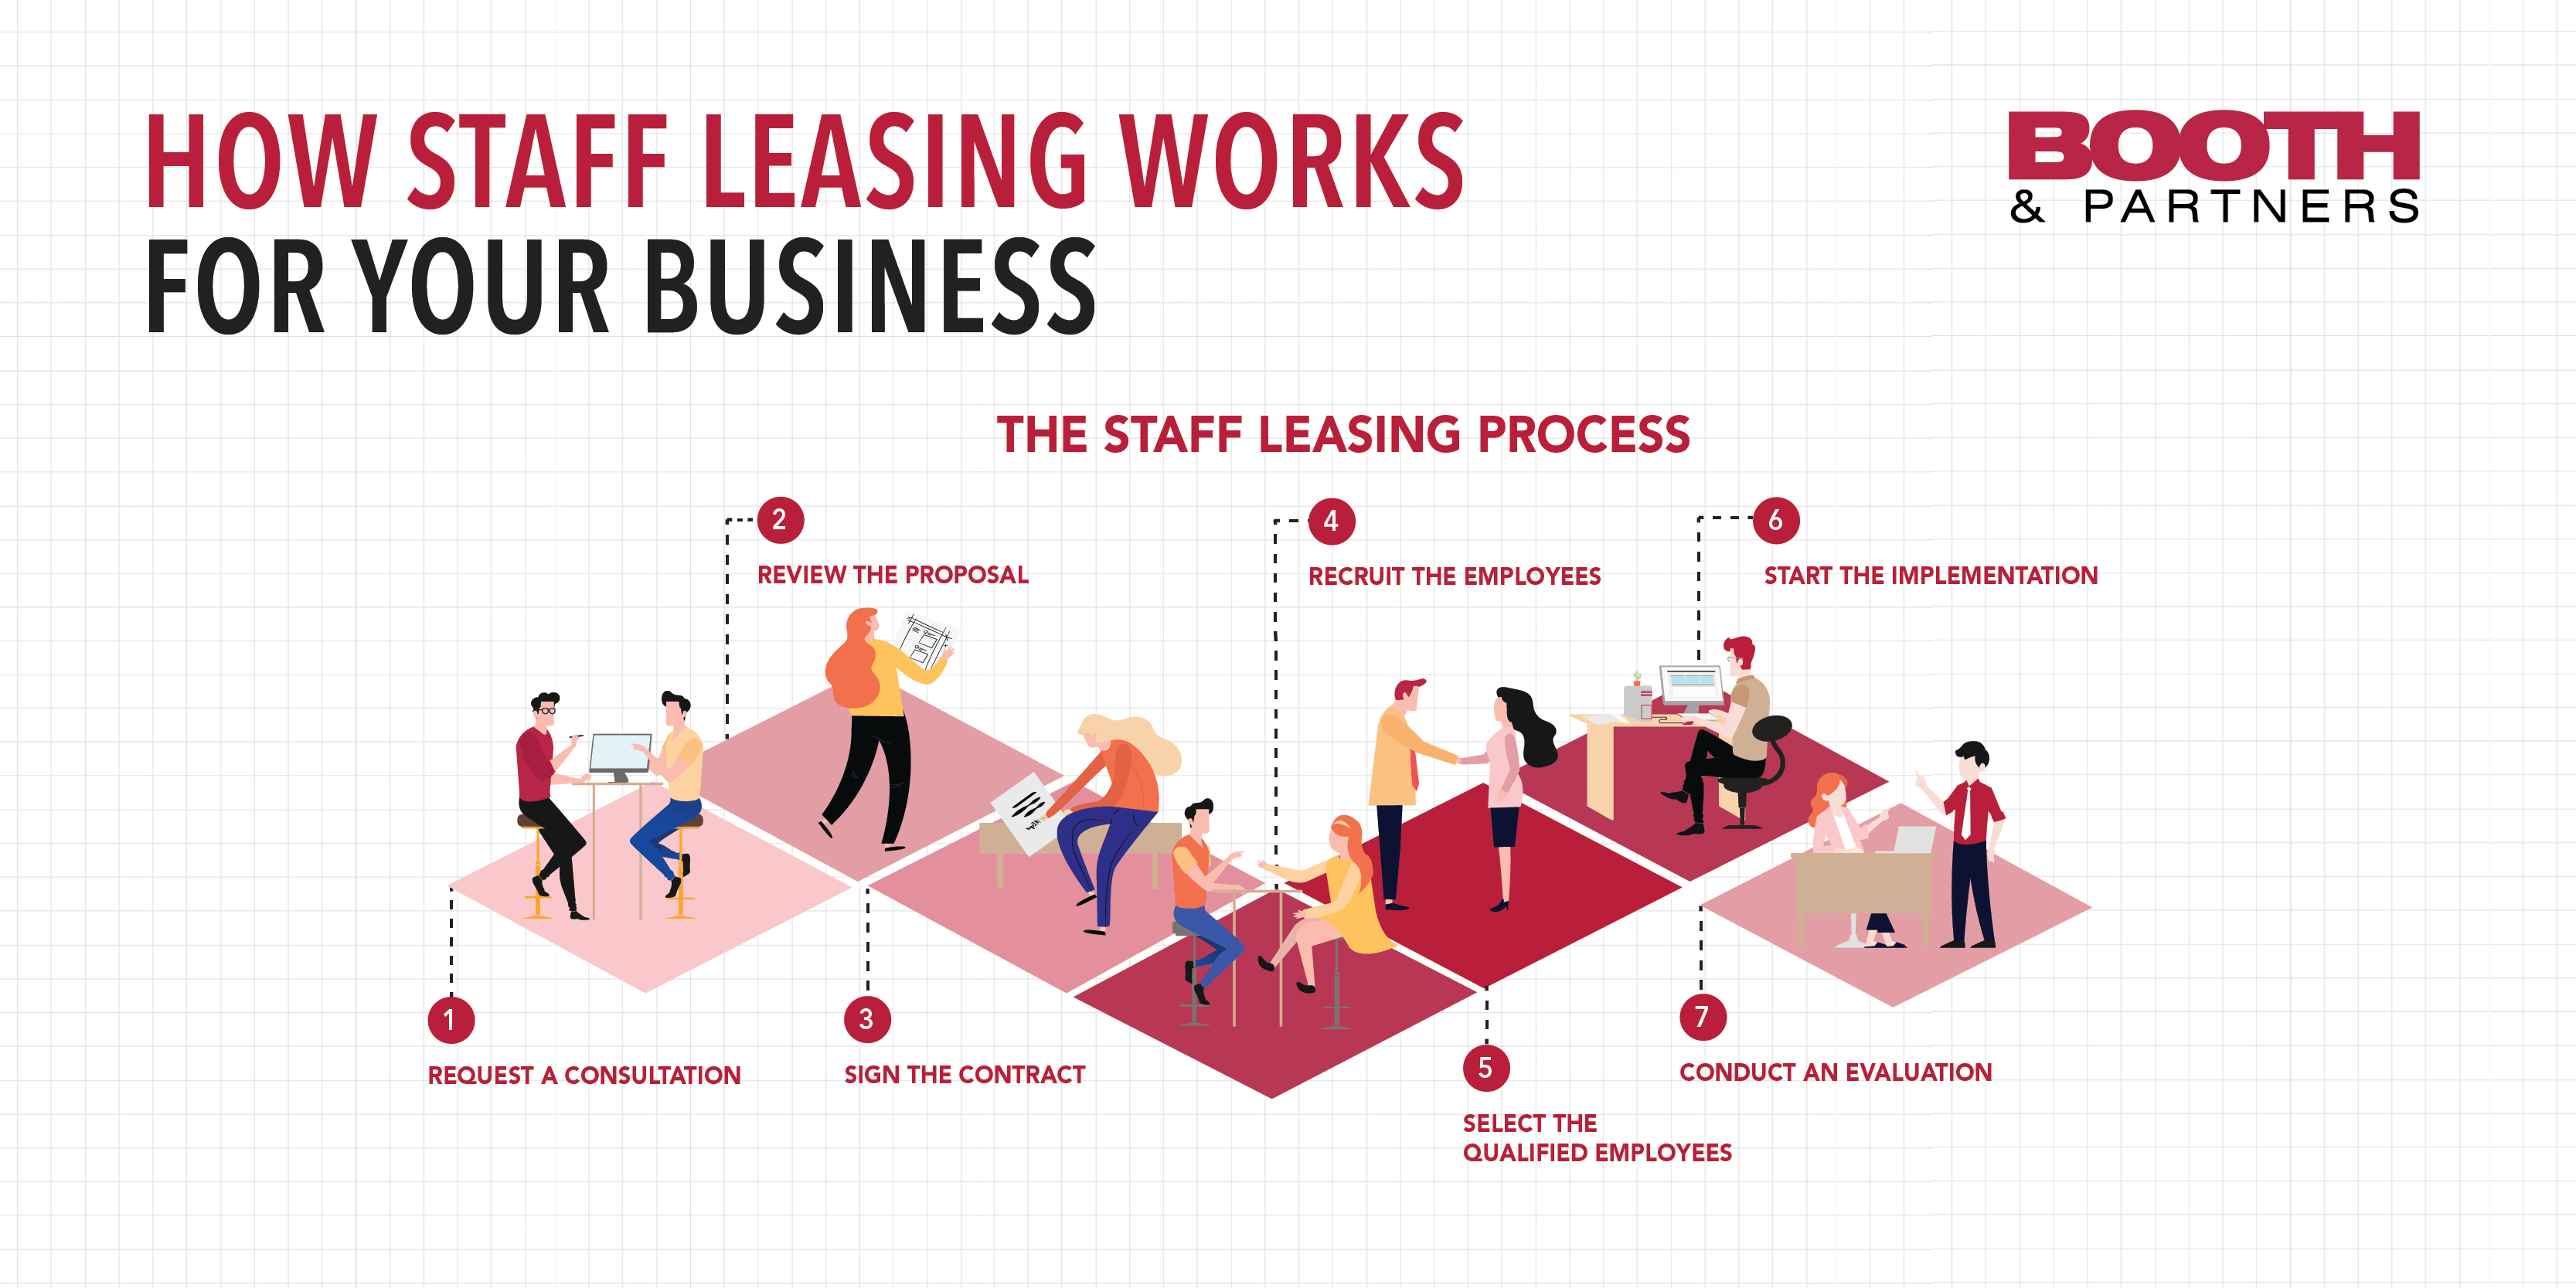 How Staff Leasing Works for Your Business [Infographic]